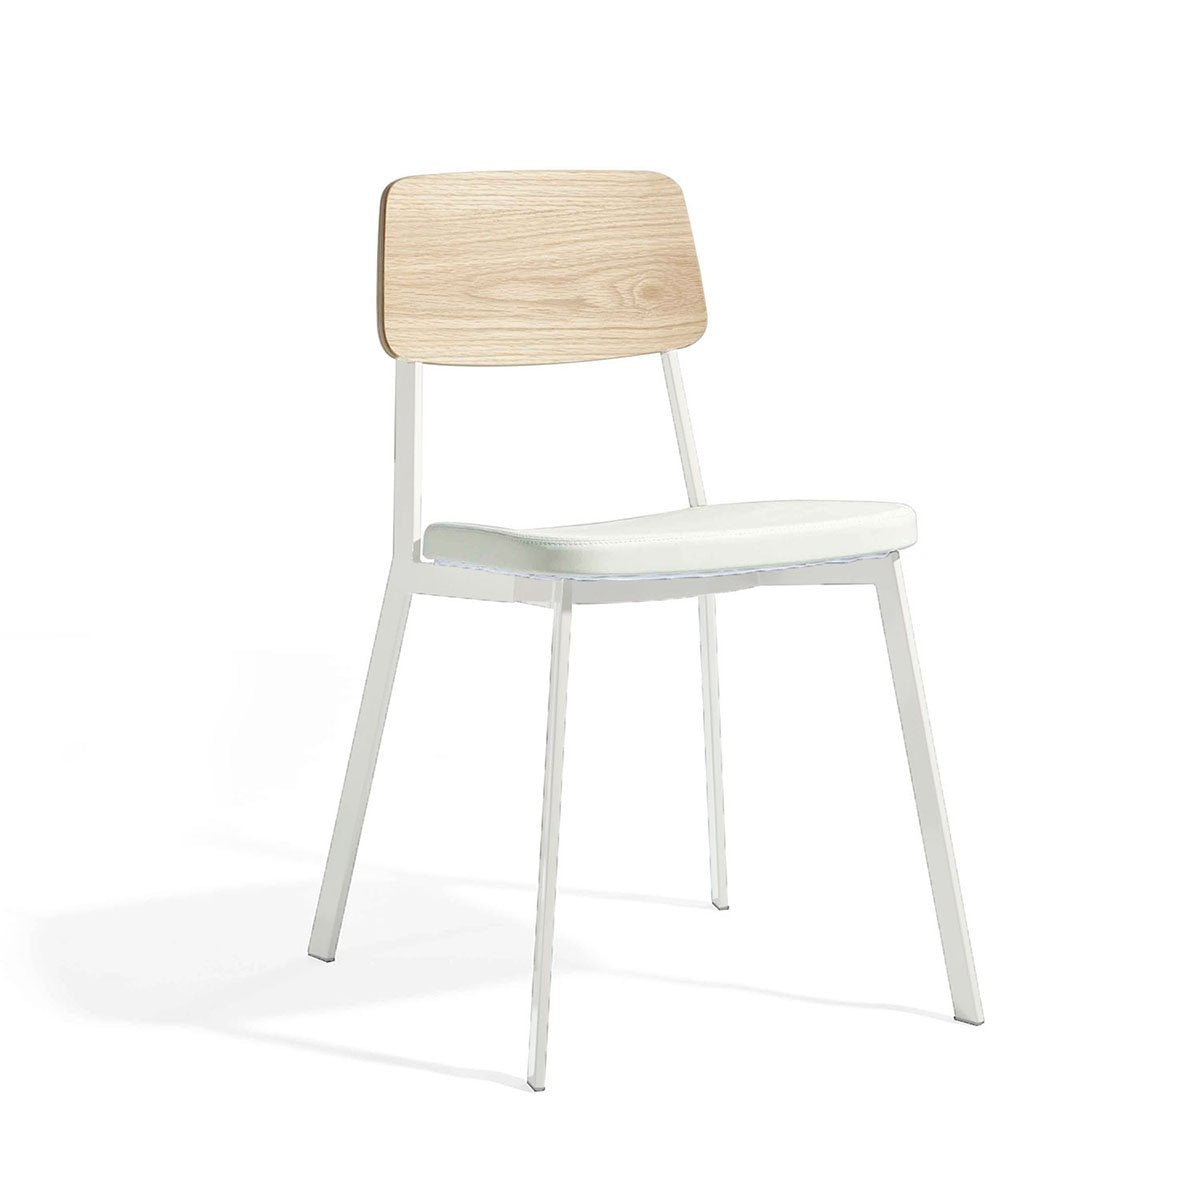 [FEC0439WHTA] Big Sprint Side Chair